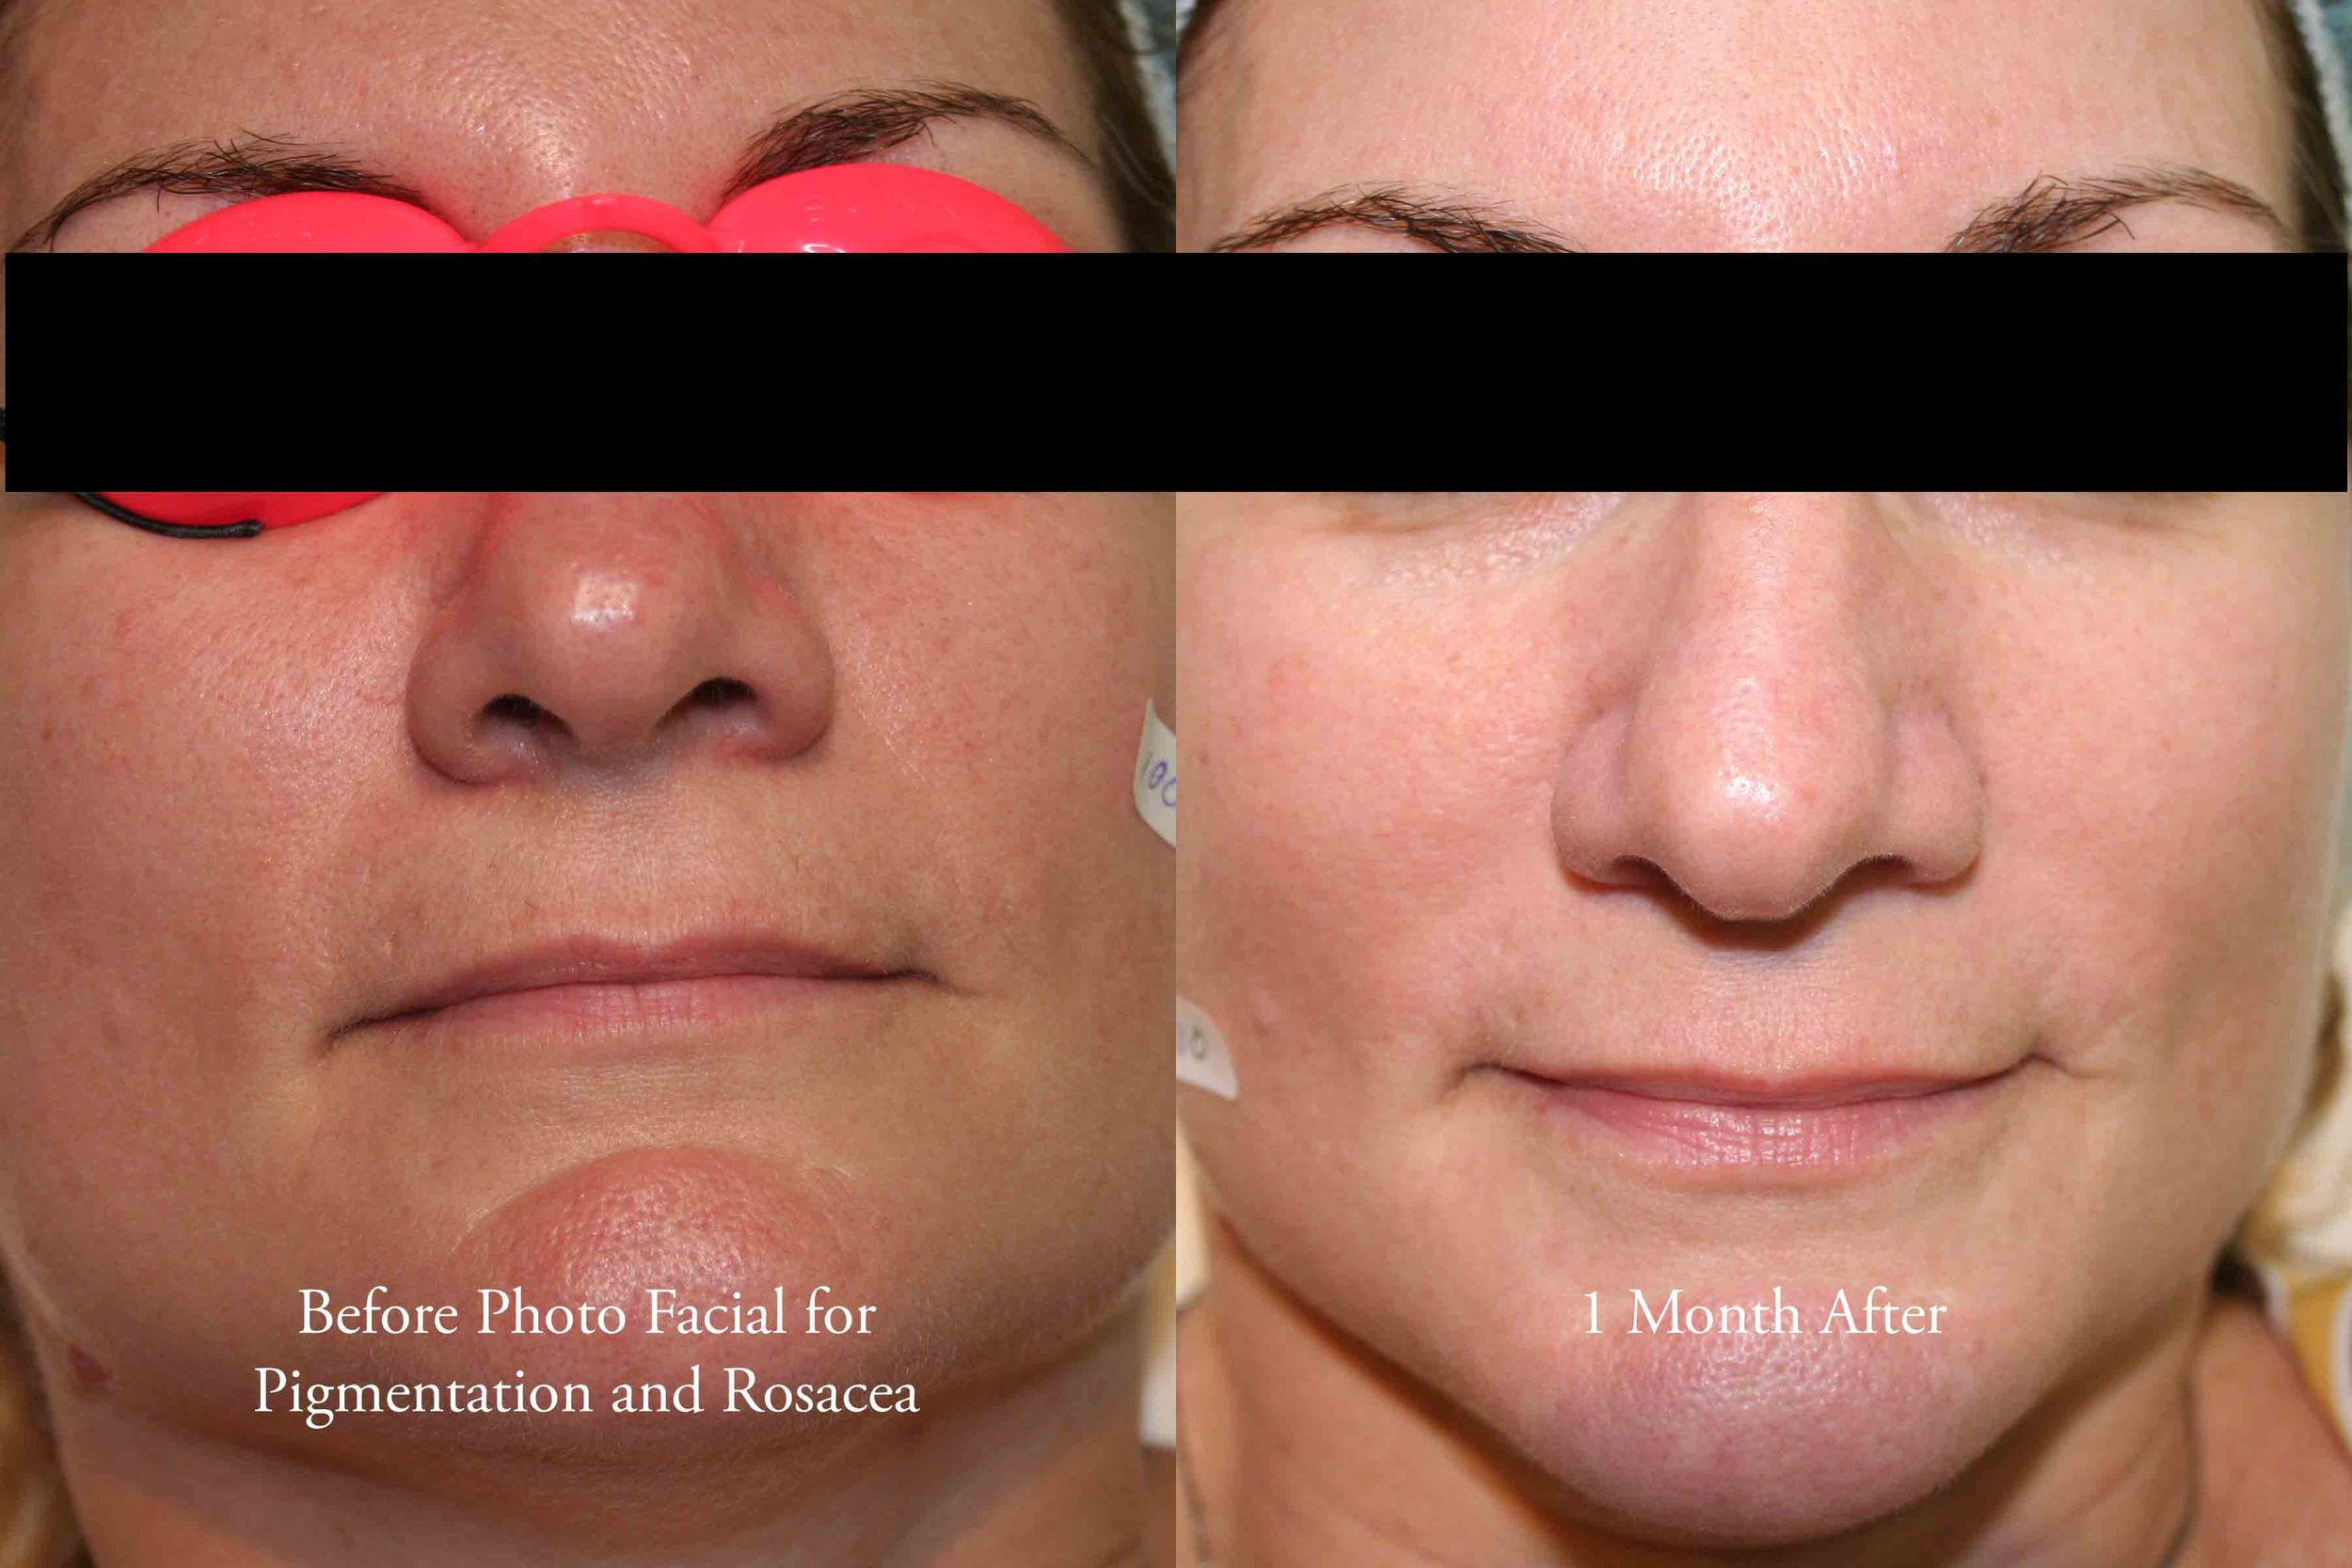 photo facial for rosacea and pigmentation 1 - web.jpg